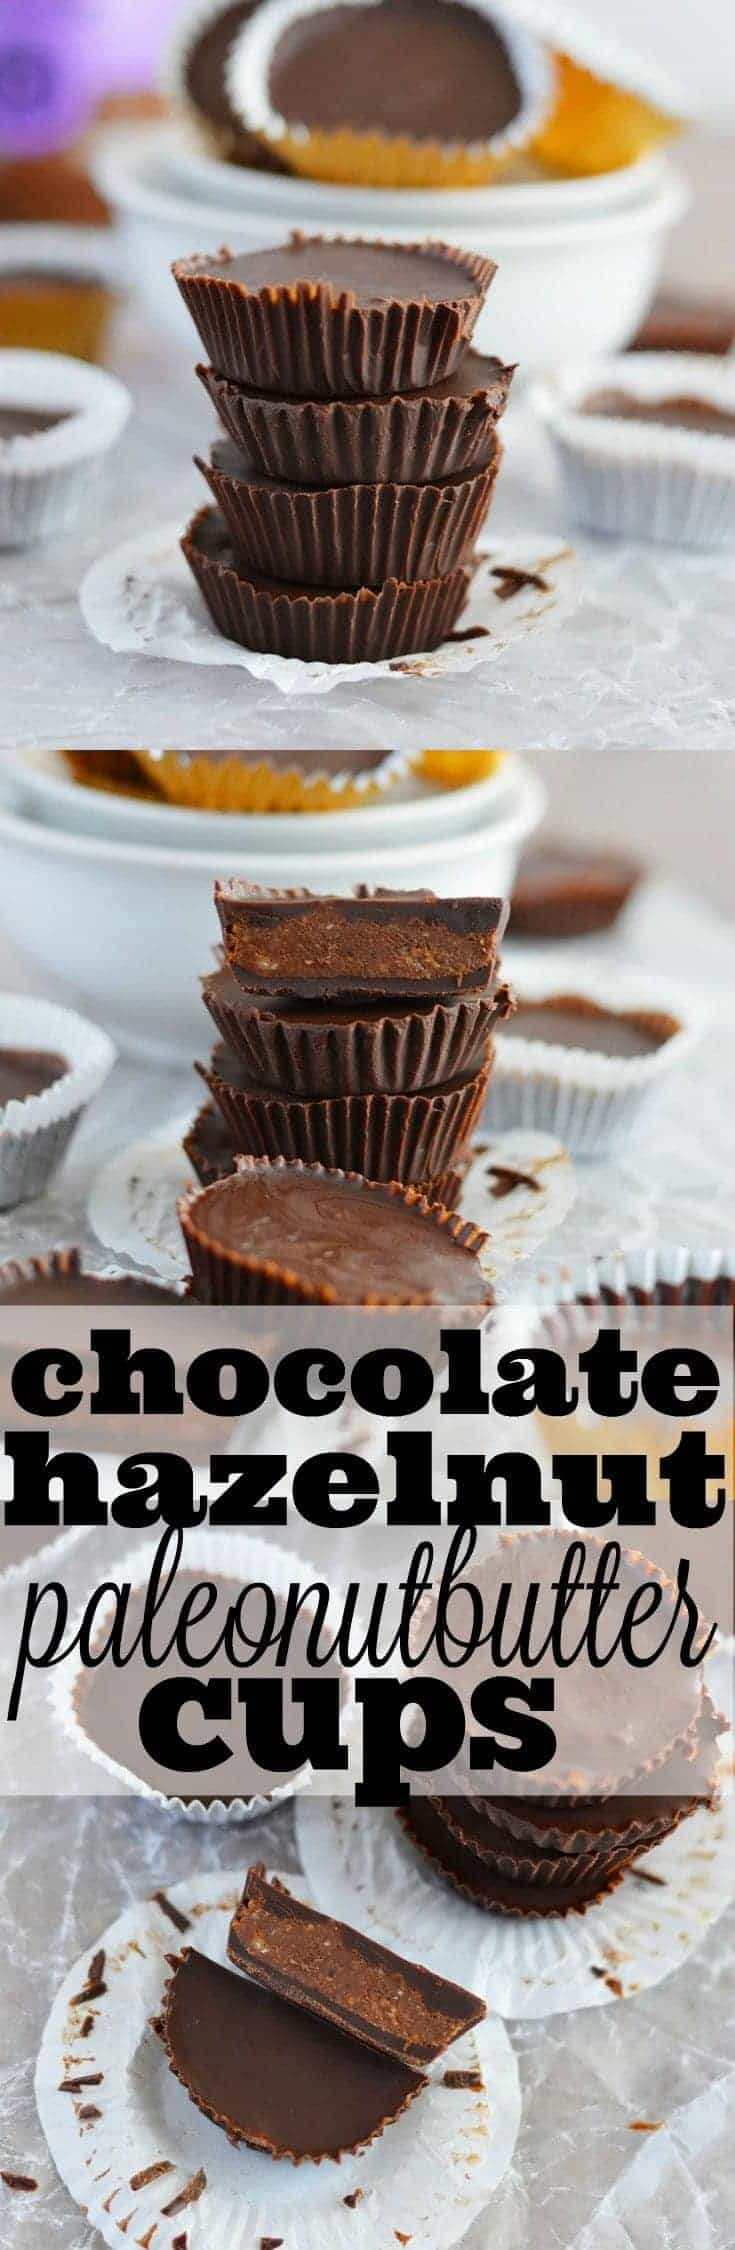 Chocolate Hazelnut PaleoNutbutter Cups from What The Fork Food Blog . Paleo, gluten free, and dairy free.| whattheforkfoodblog.com